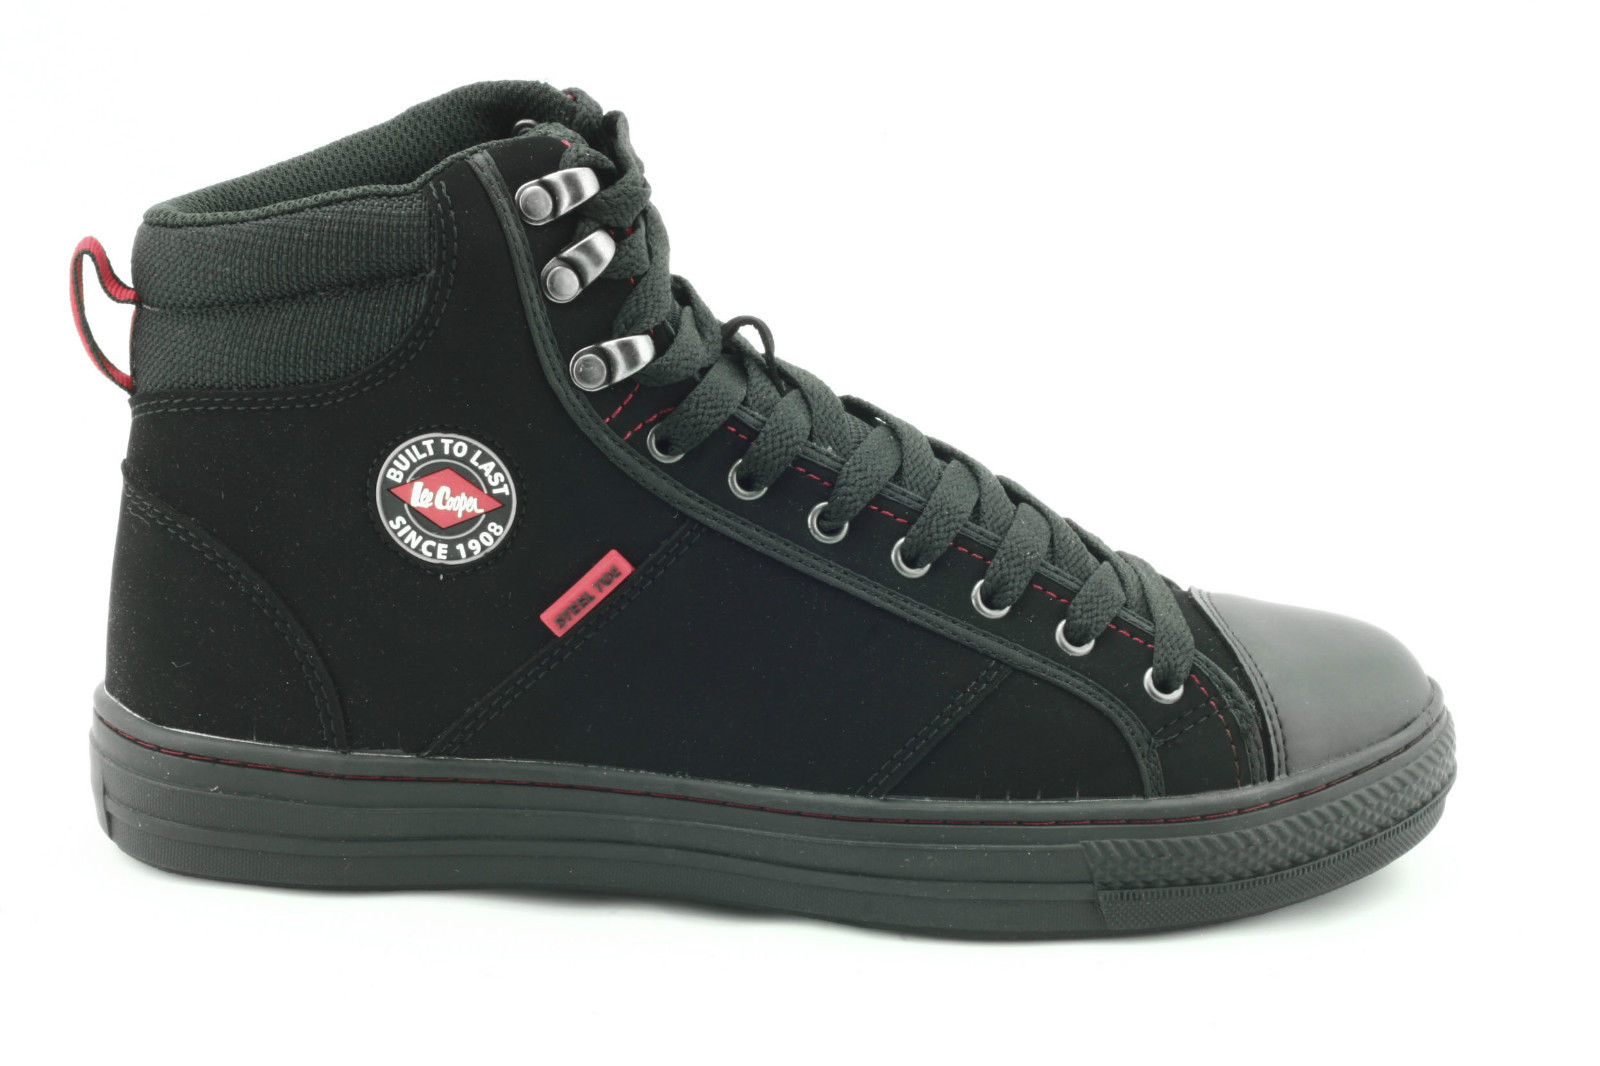 73c6eaafbeb Lee Cooper Work Boot Safety Toe Cap Black